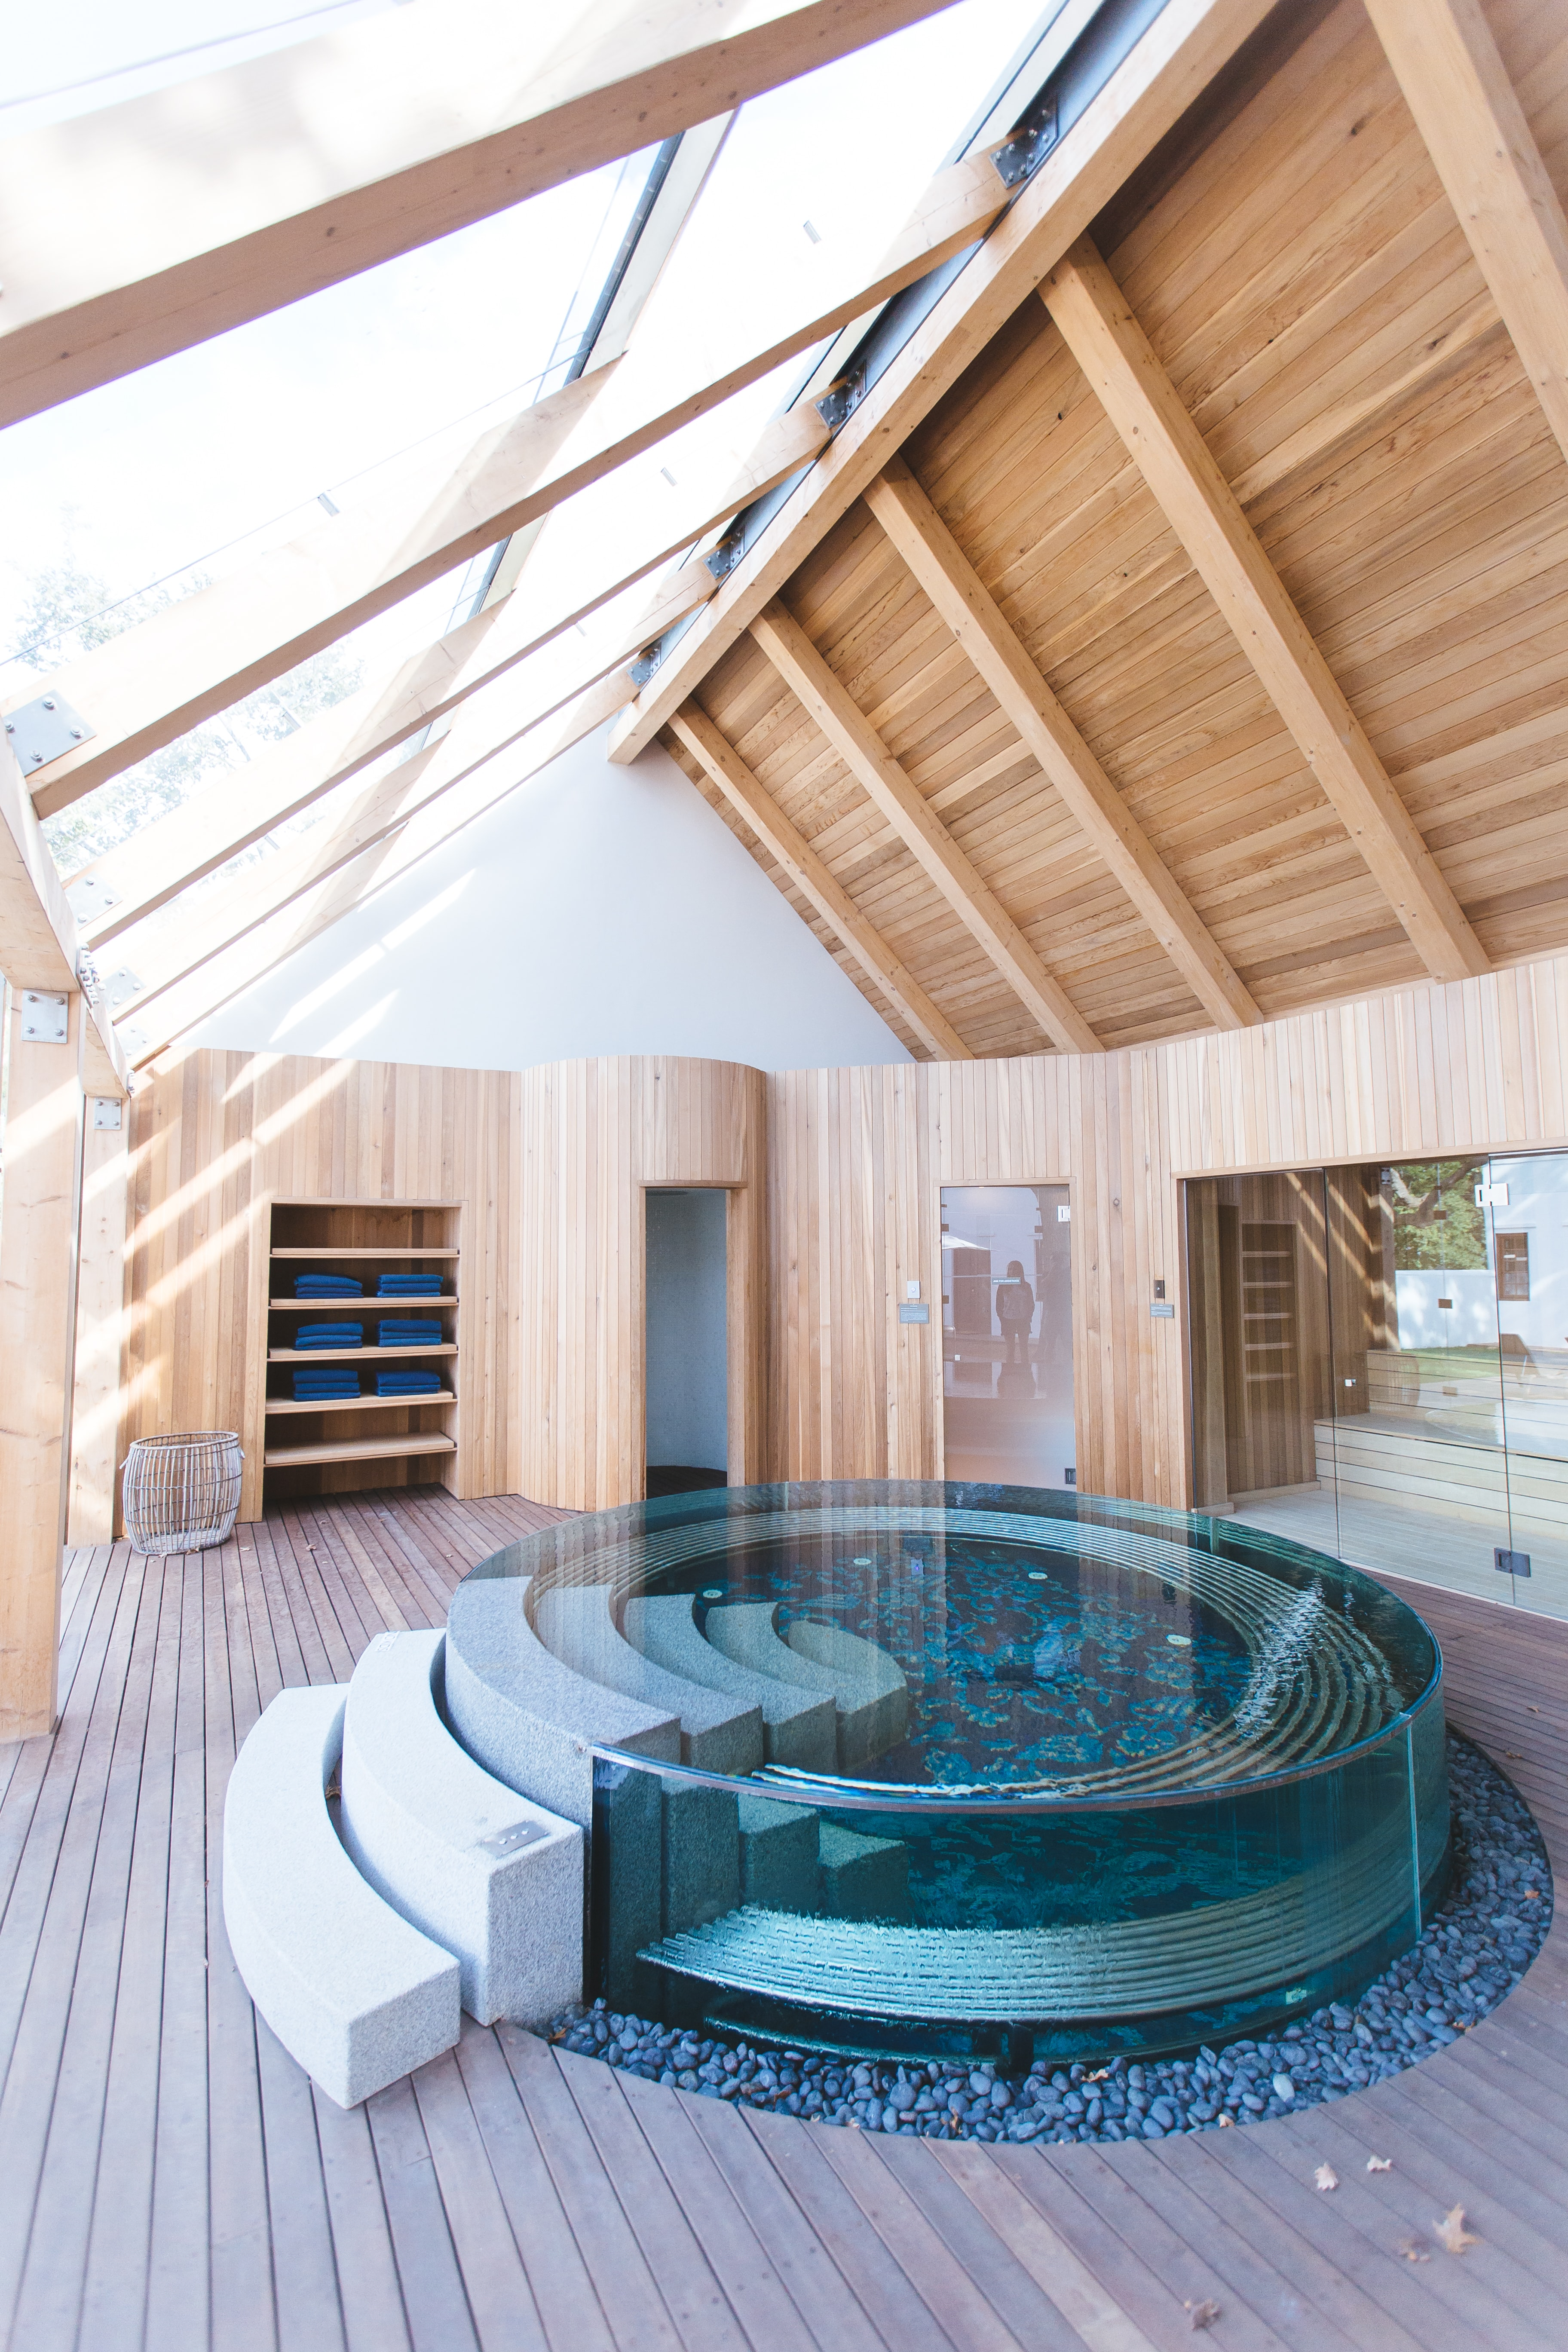 A beautiful indoor spa tub fit for six people.